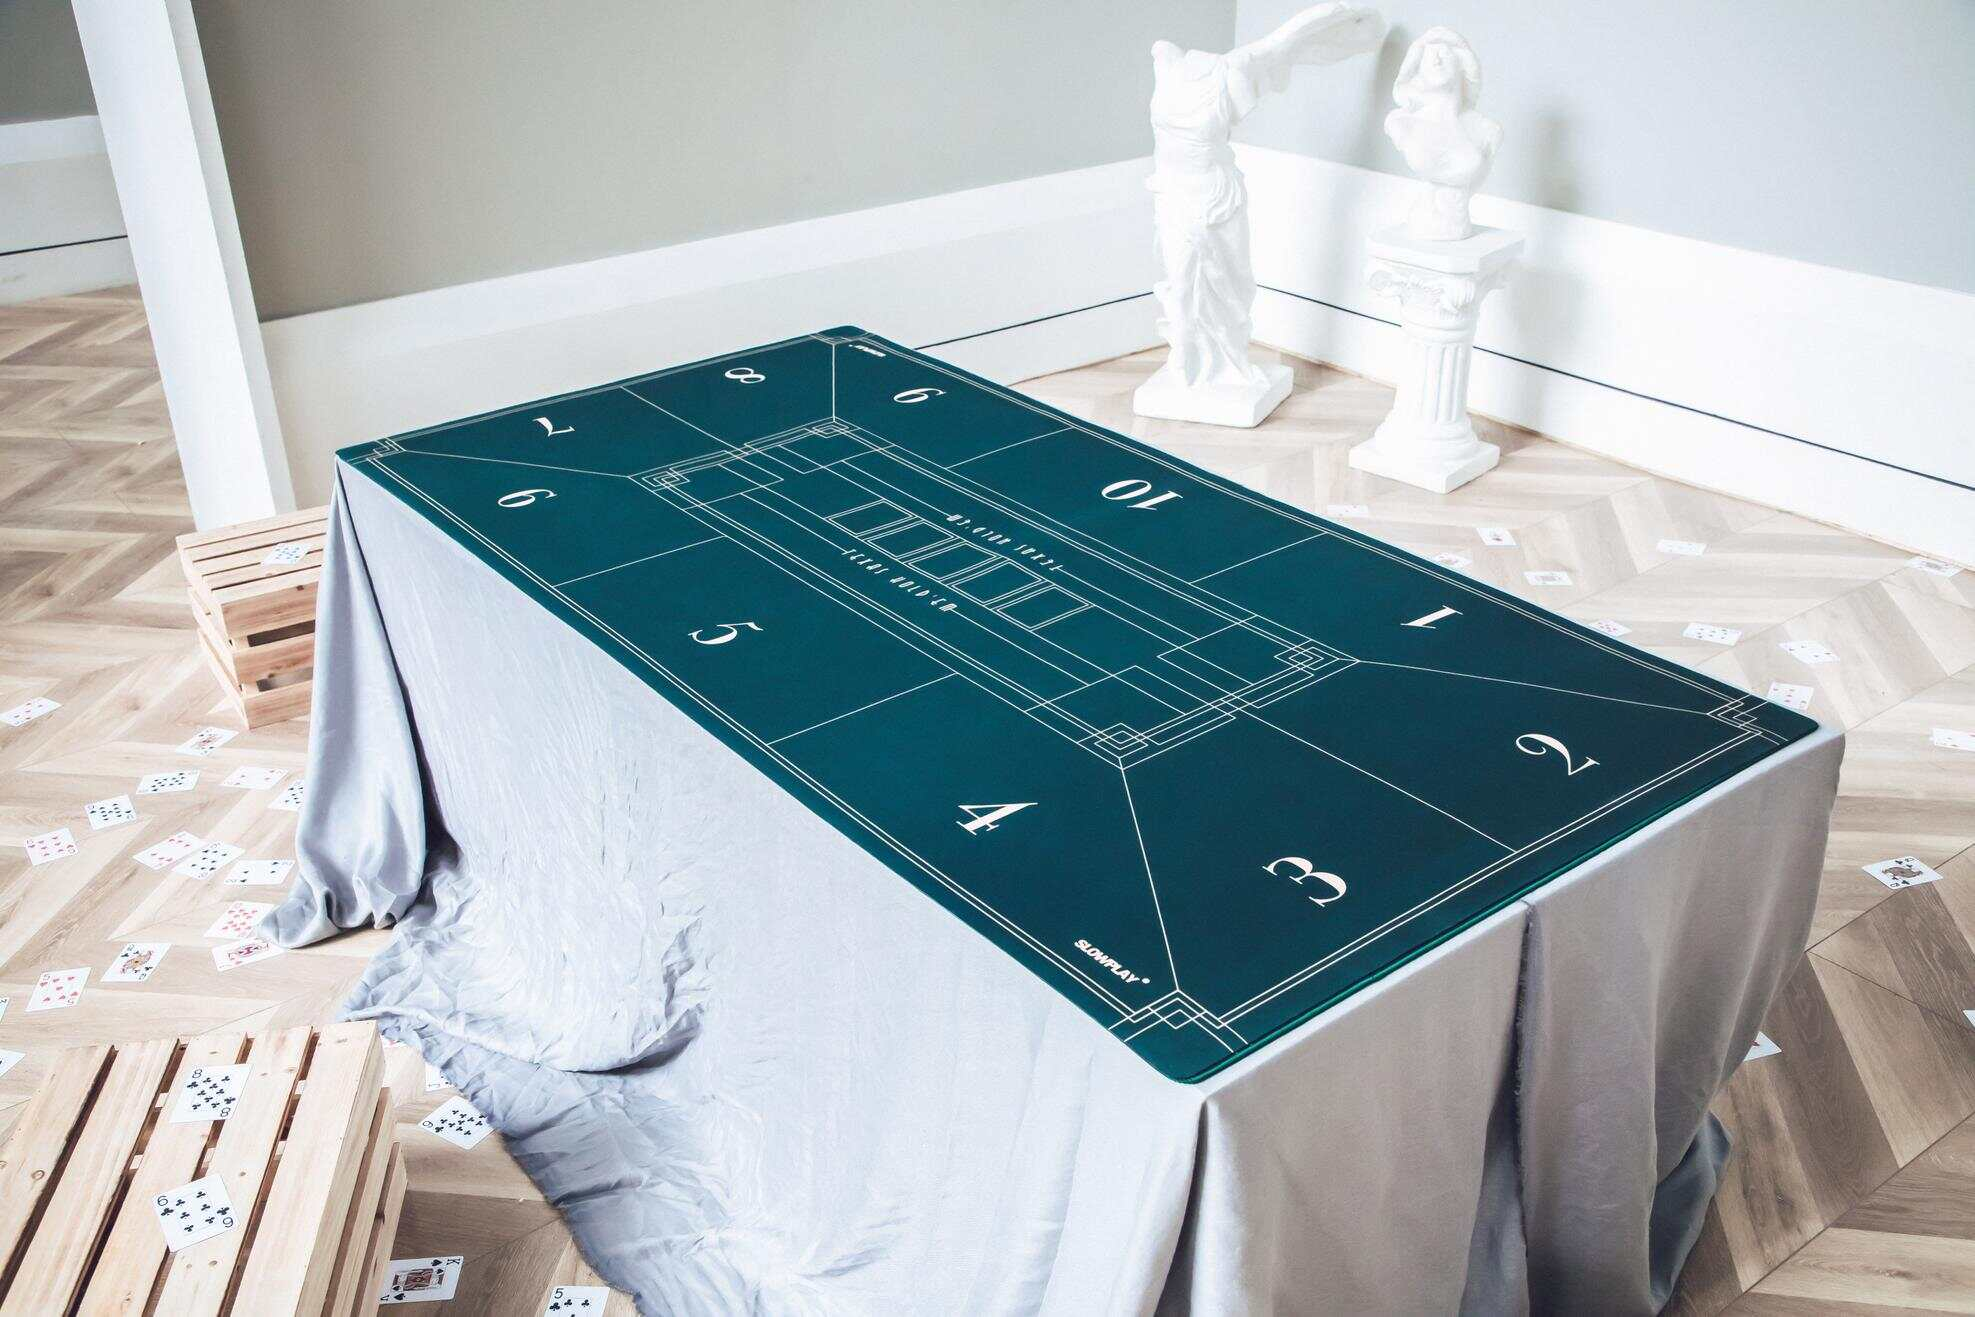 The use of rich color contrast and organic lines inspired by Art Deco style brings unique visual interpretation to SLOWPLAY's Nash Poker Mat